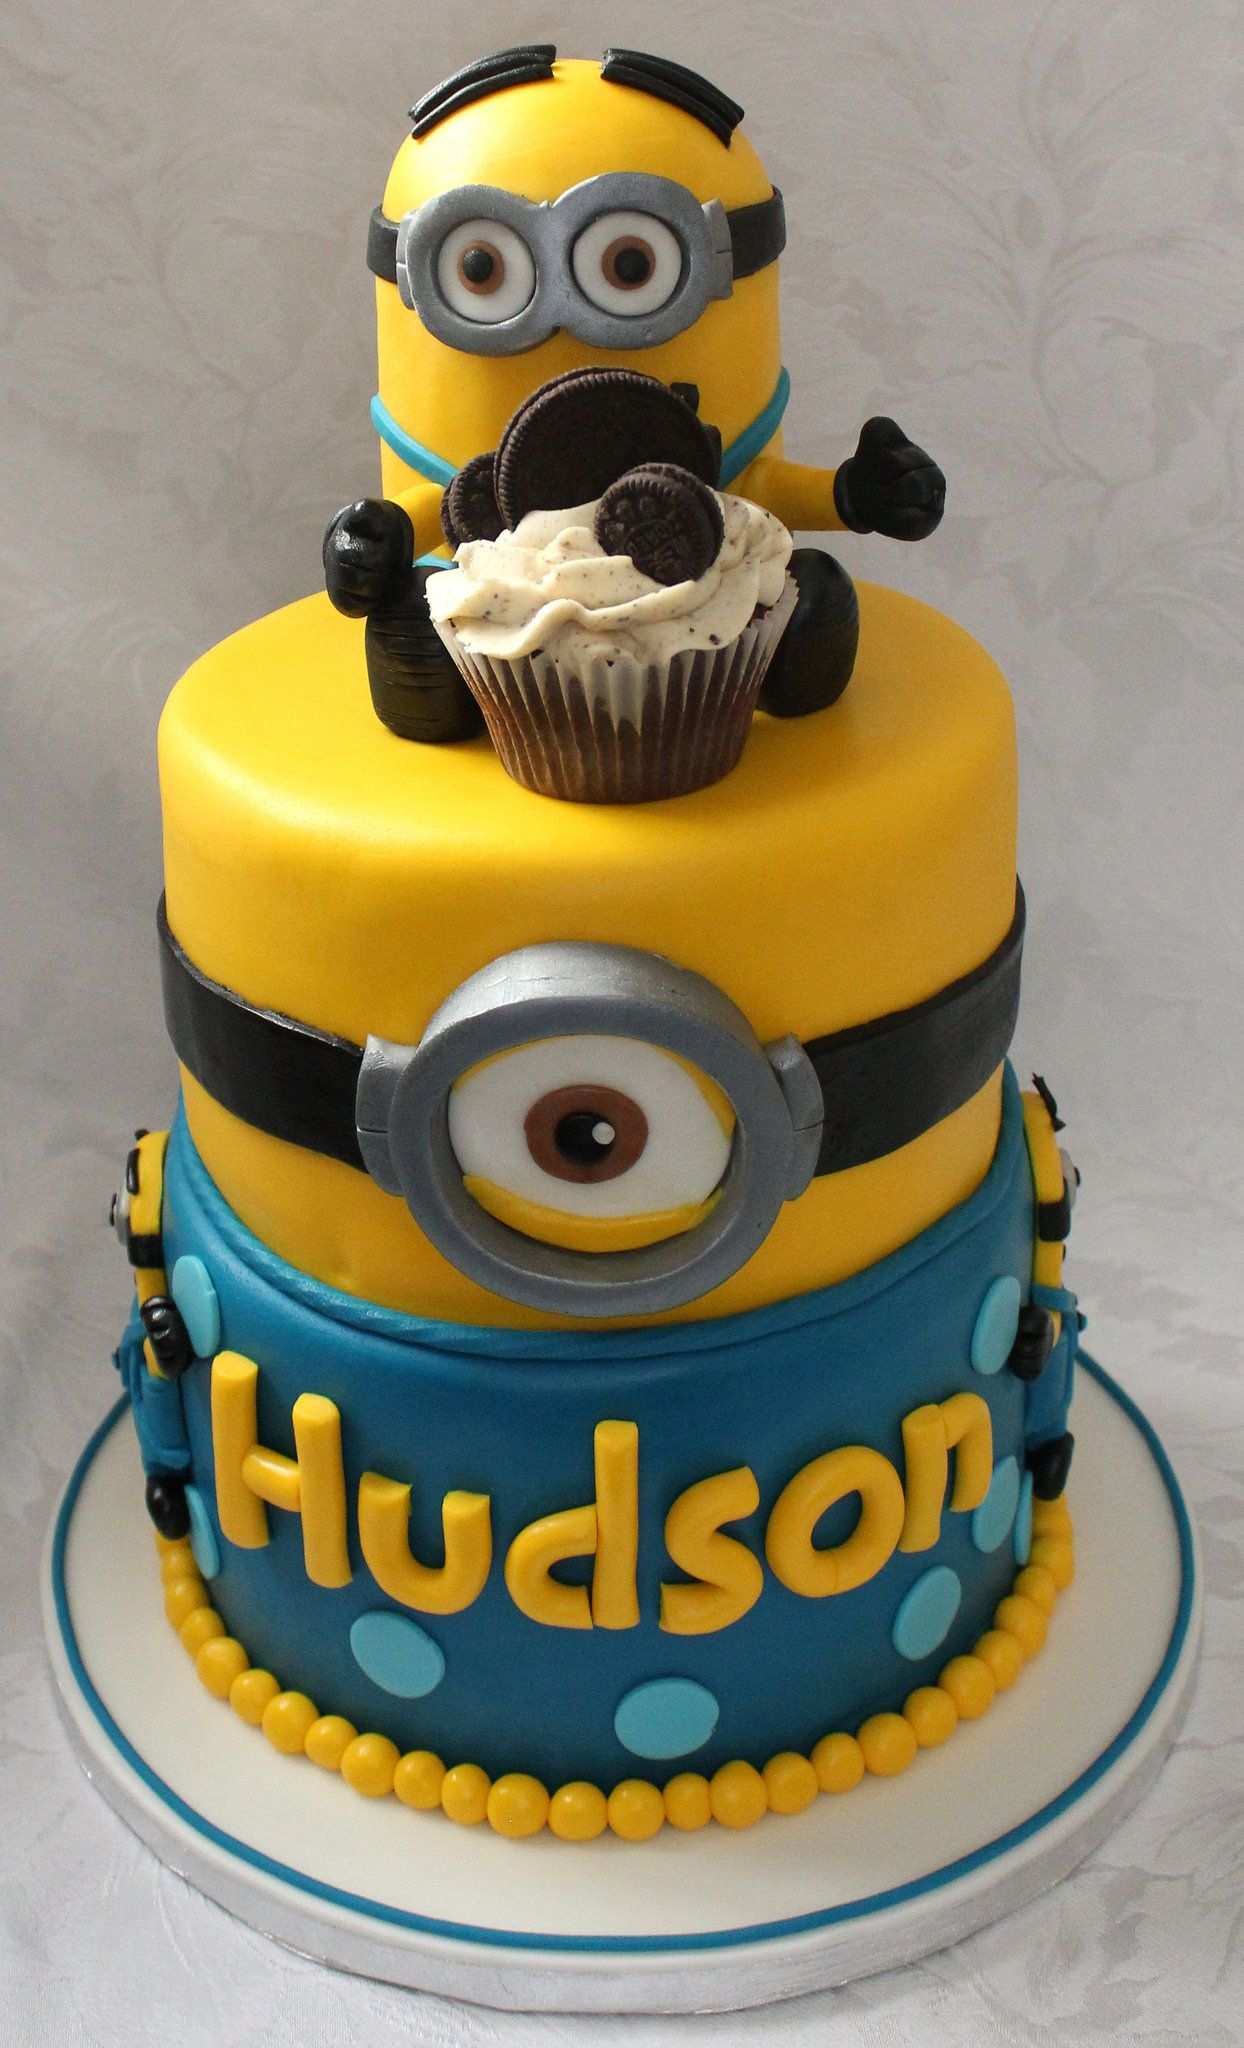 Minion birthday cake Birthday cakes Birthdays and Cake